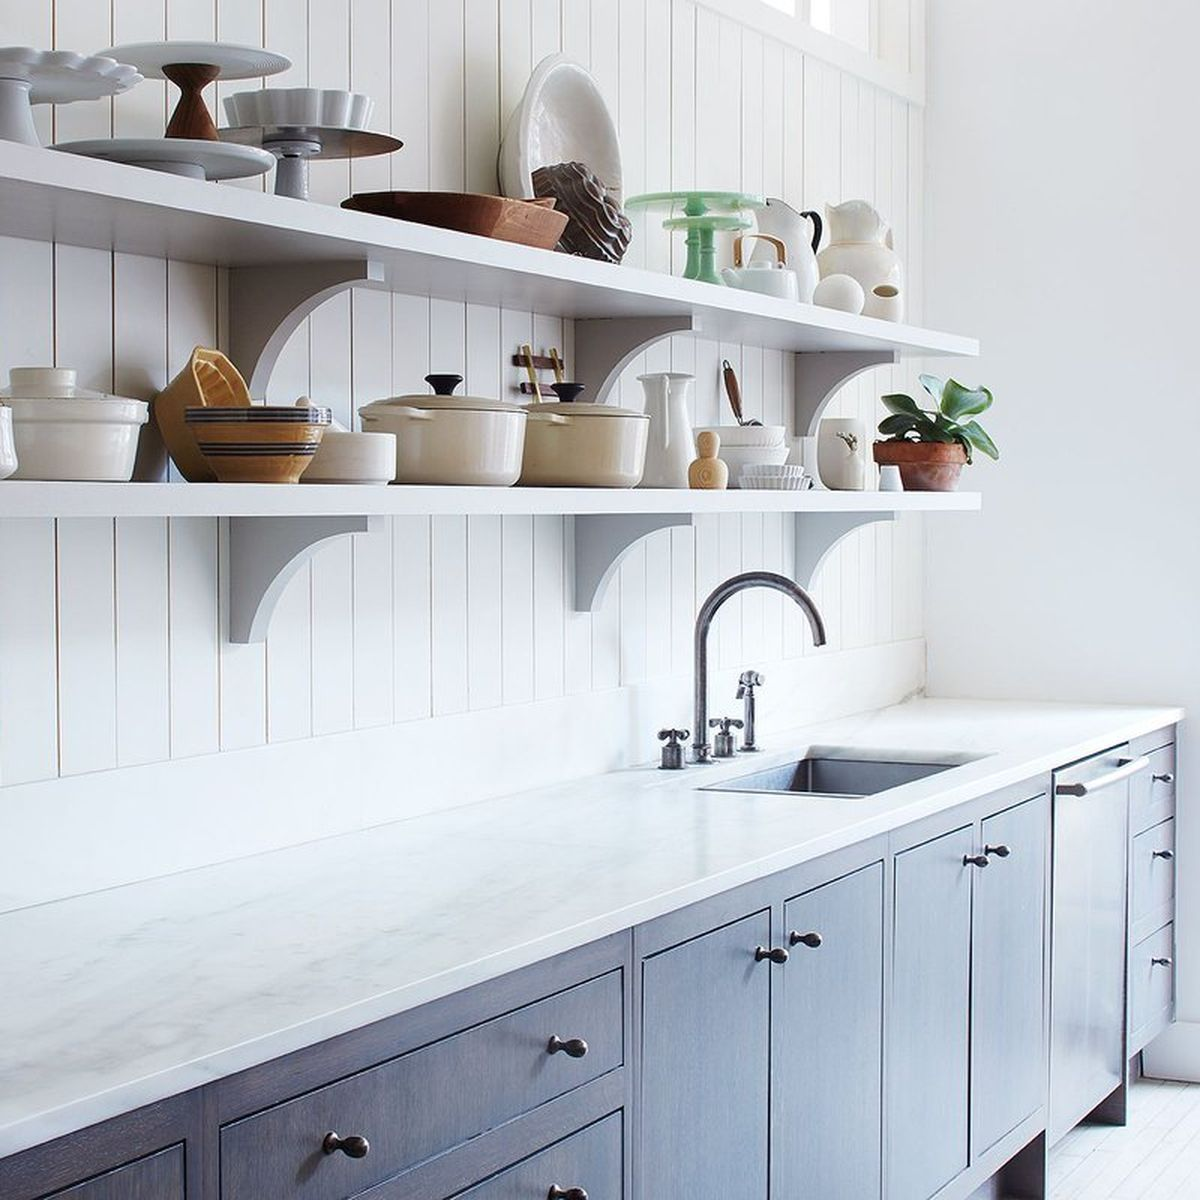 Upgrade Old Kitchen Cabinets With This Quick & Easy DIY Hack